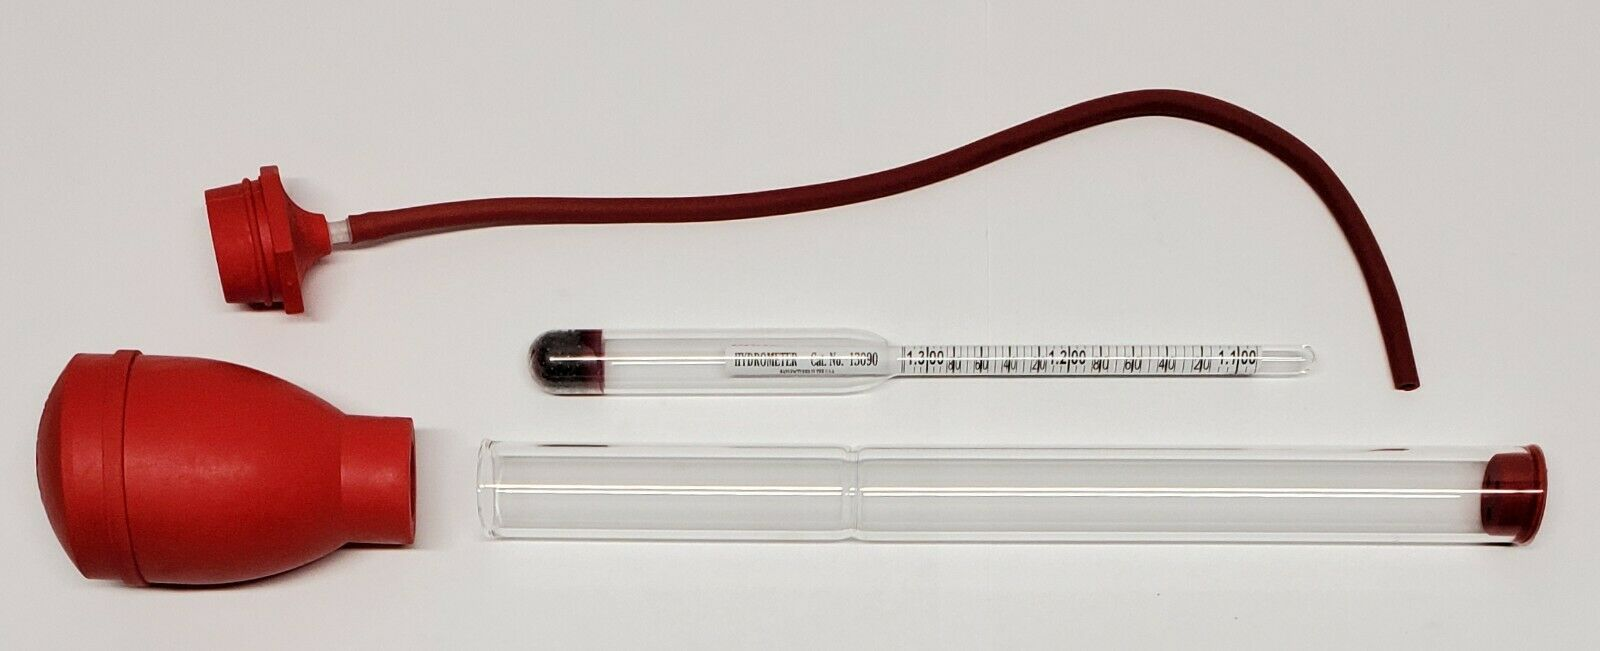 Enersys Brady Instruments 81332 Battery Tester Hydrometer/Thermometer 13090